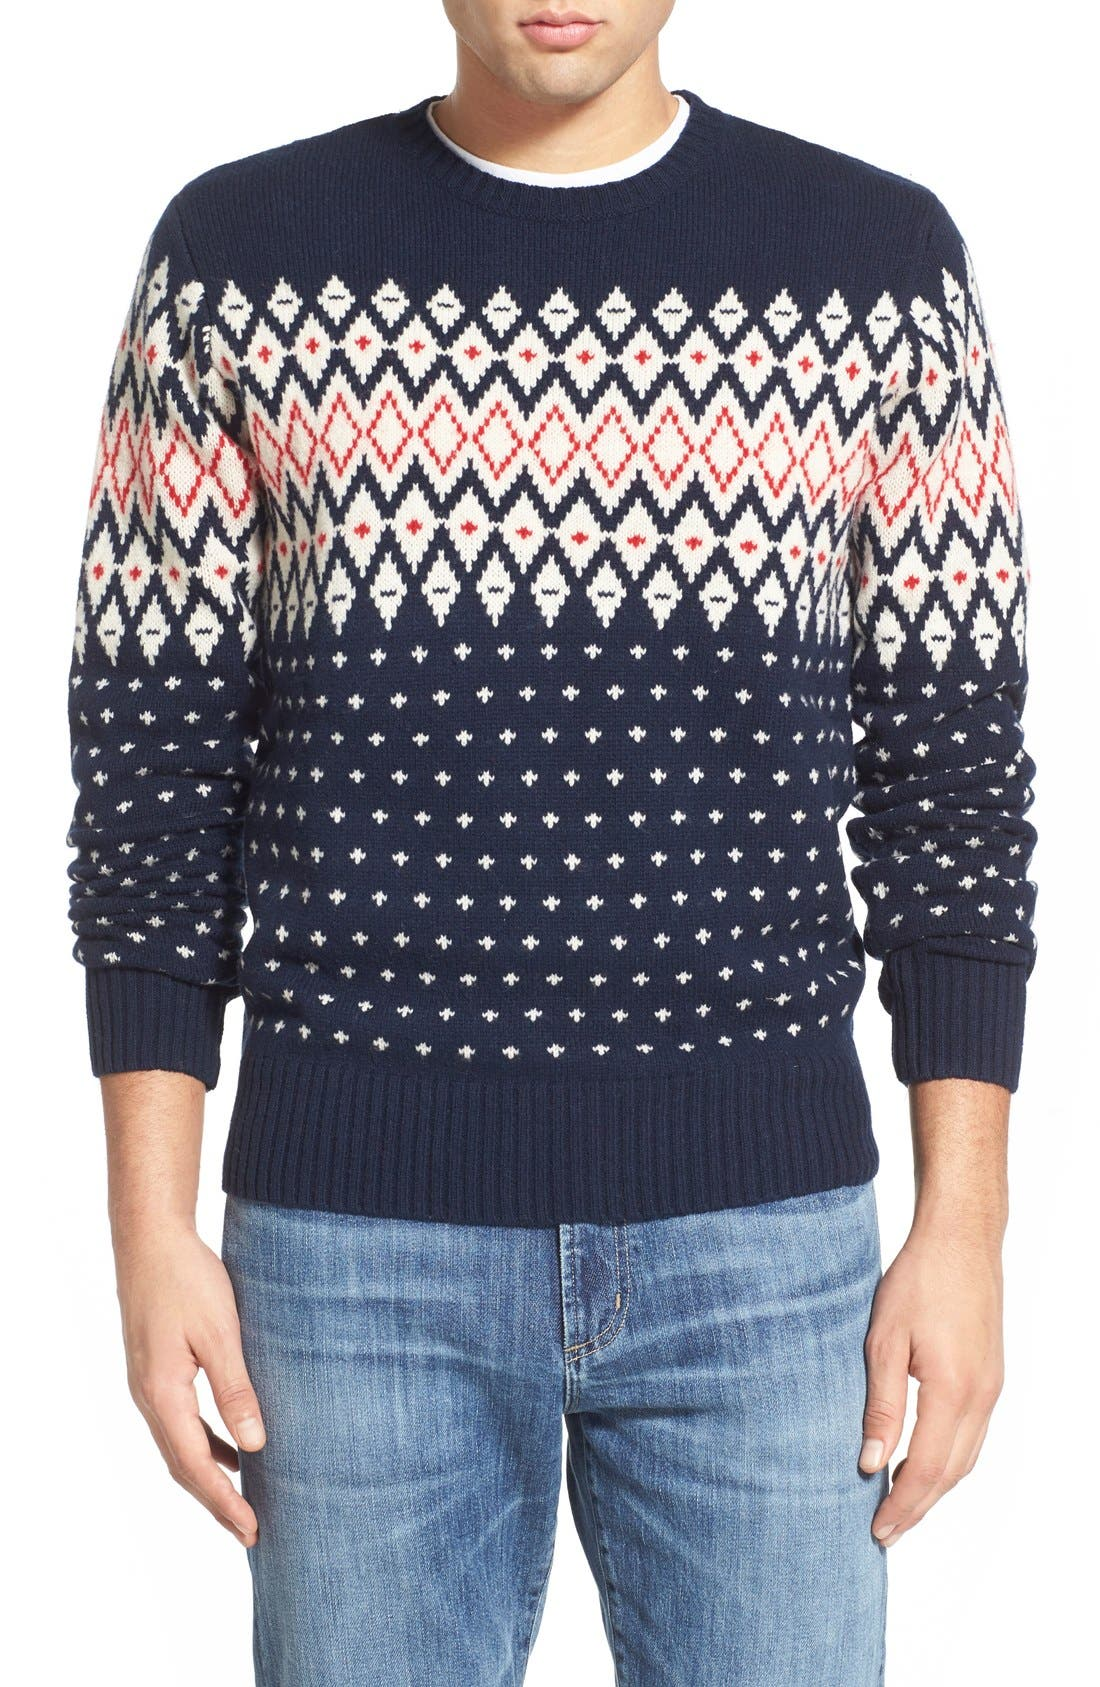 Lambswool Fair Isle Crewneck Sweater,                         Main,                         color,